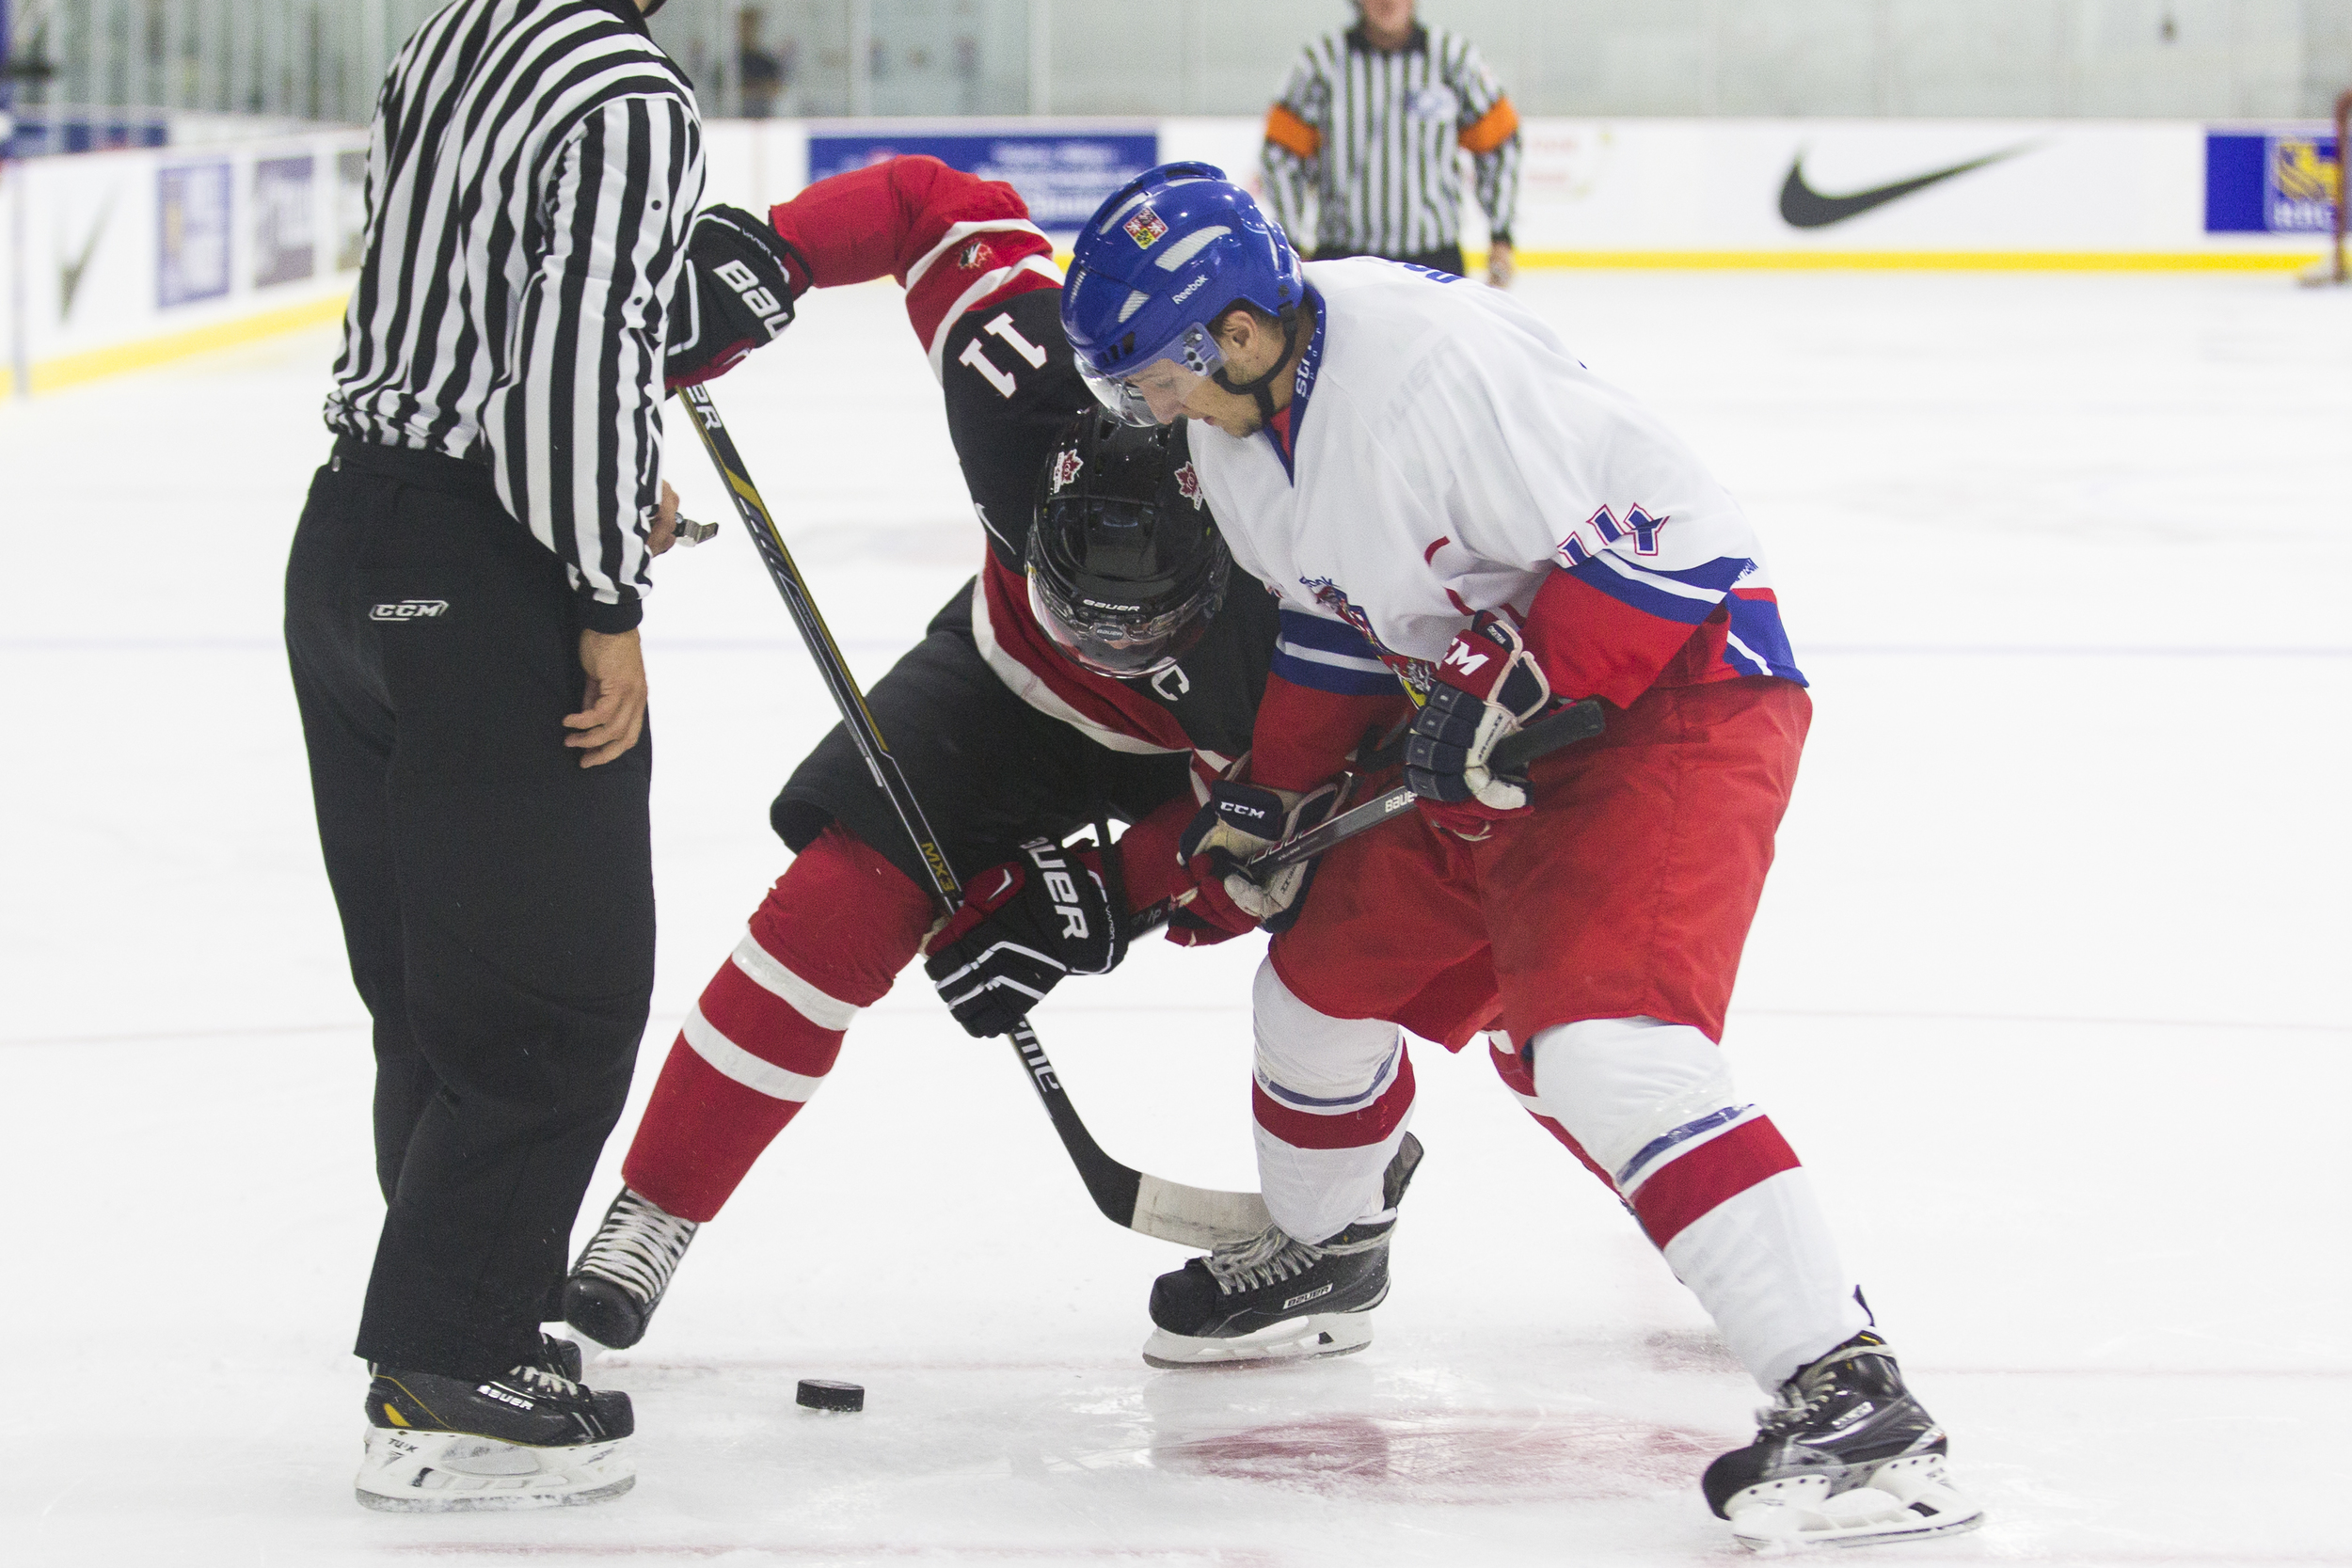 2014-08-08_WORLD-JUNIORS_203.JPG